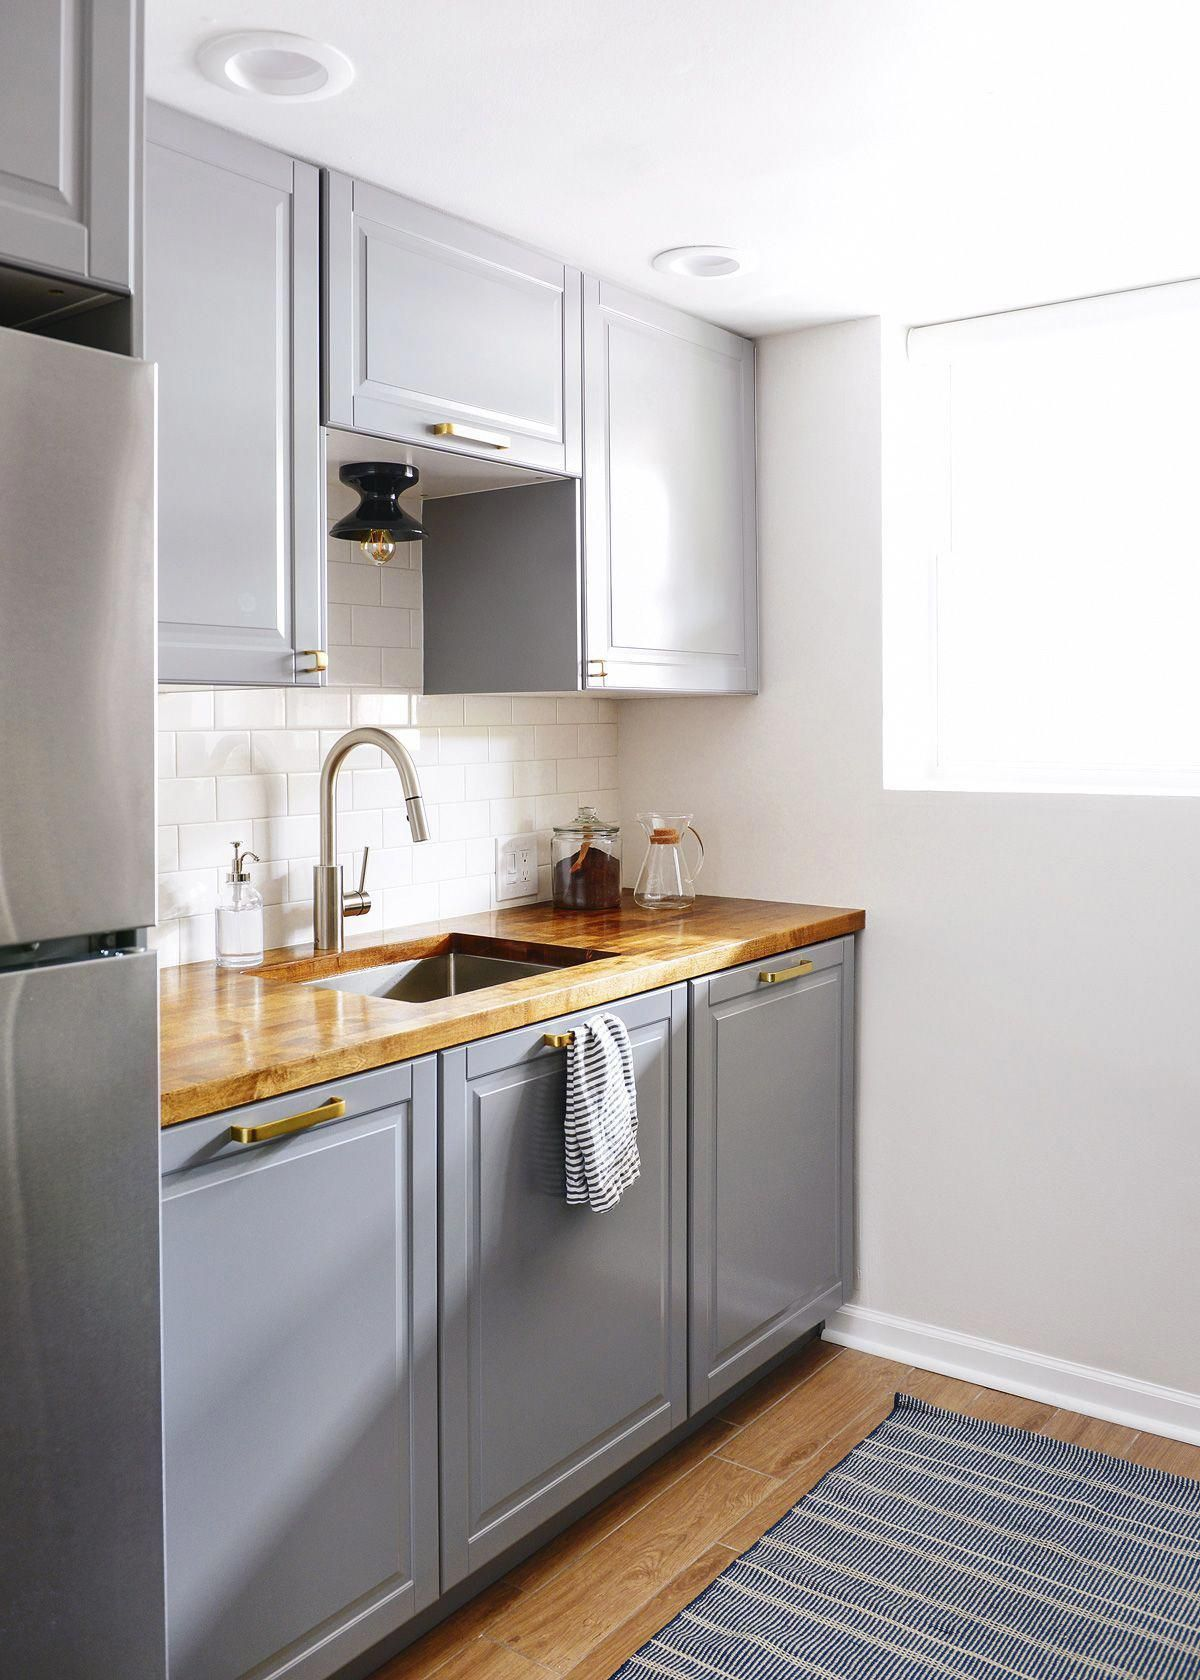 An IKEA galley kitchen by Yellow Brick Home -- #sponsor, gray cabinets, butcher block counters, gray cabinetry in kitchen, small kitchen ideas, galley kitchen ideas #kitchenideas #traditionalkitchen #ikeagalleykitchen